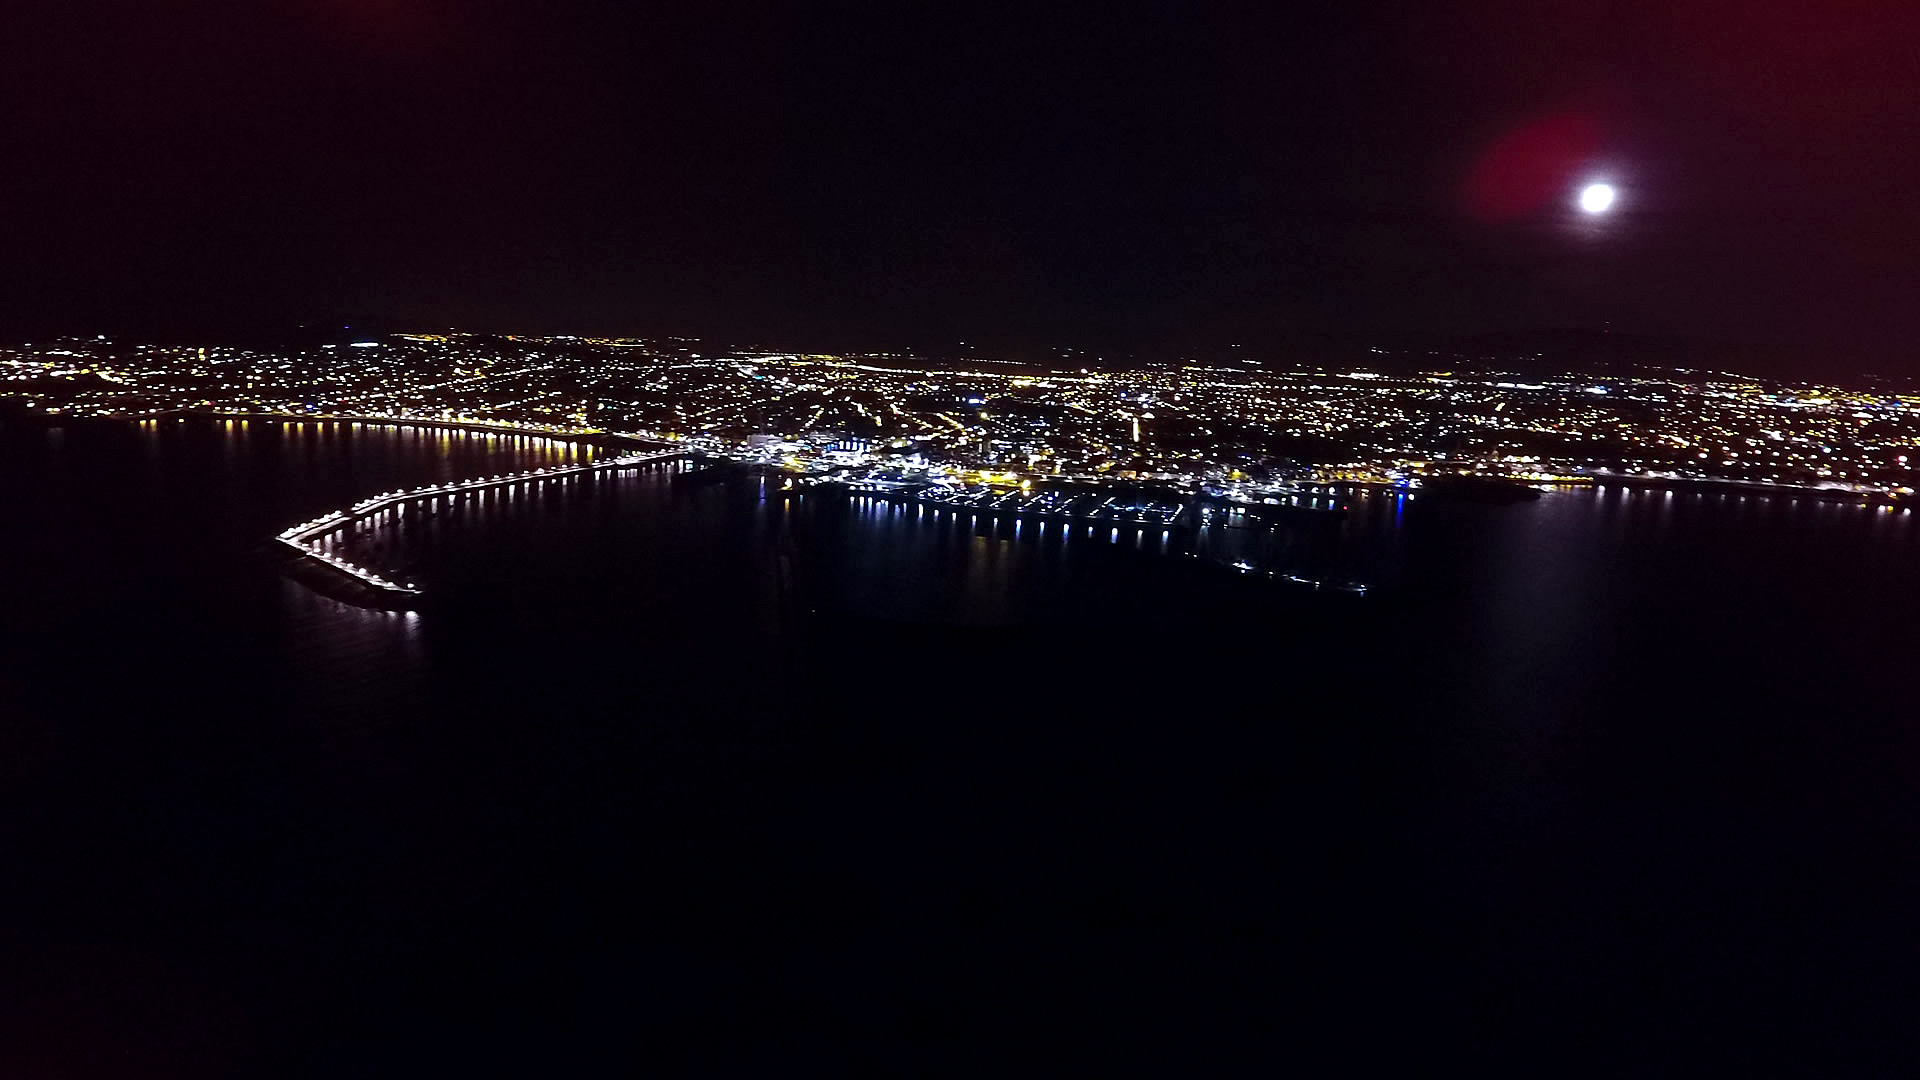 Dun Laoghaire Pier at Night